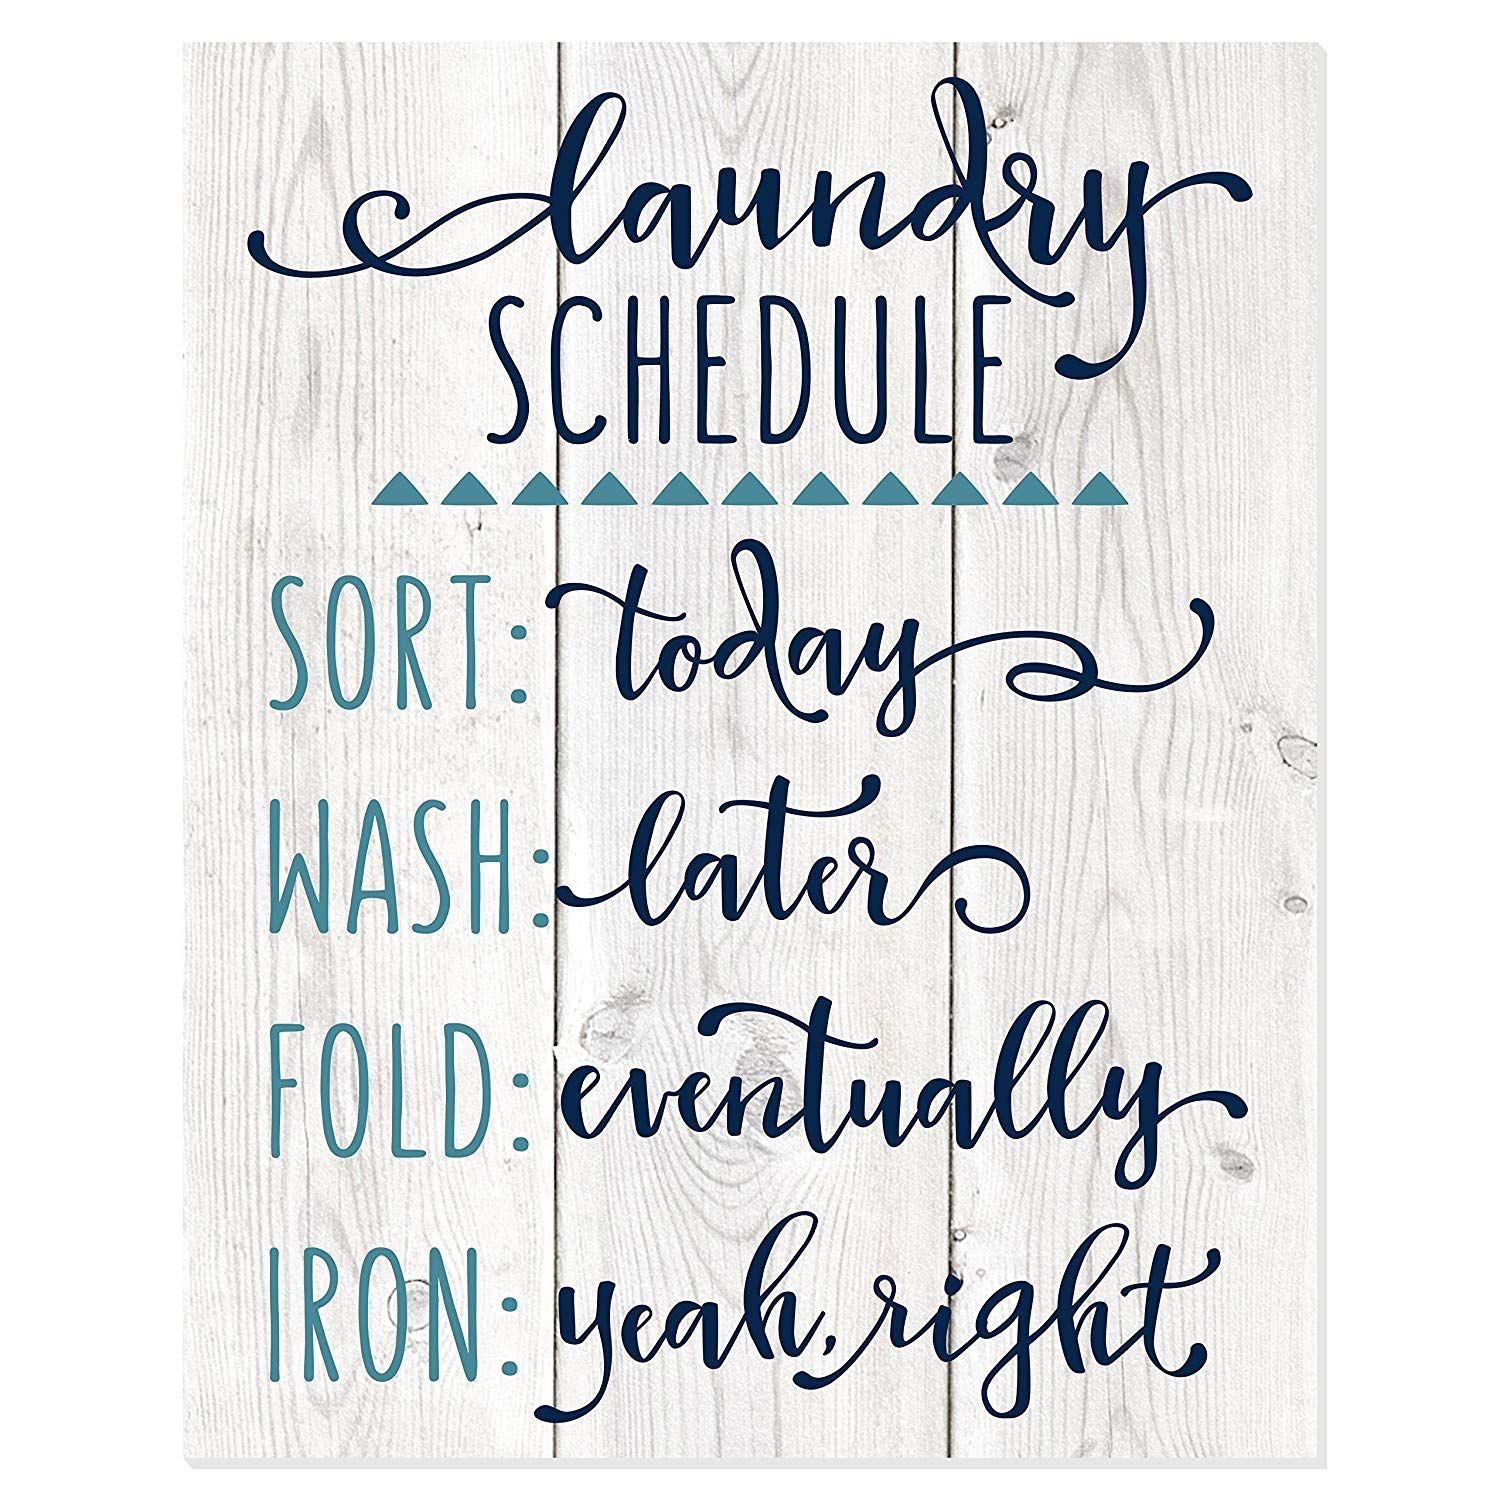 Mrc Wood Products Laundry Schedule Funny Wall Sign Ad Afflink